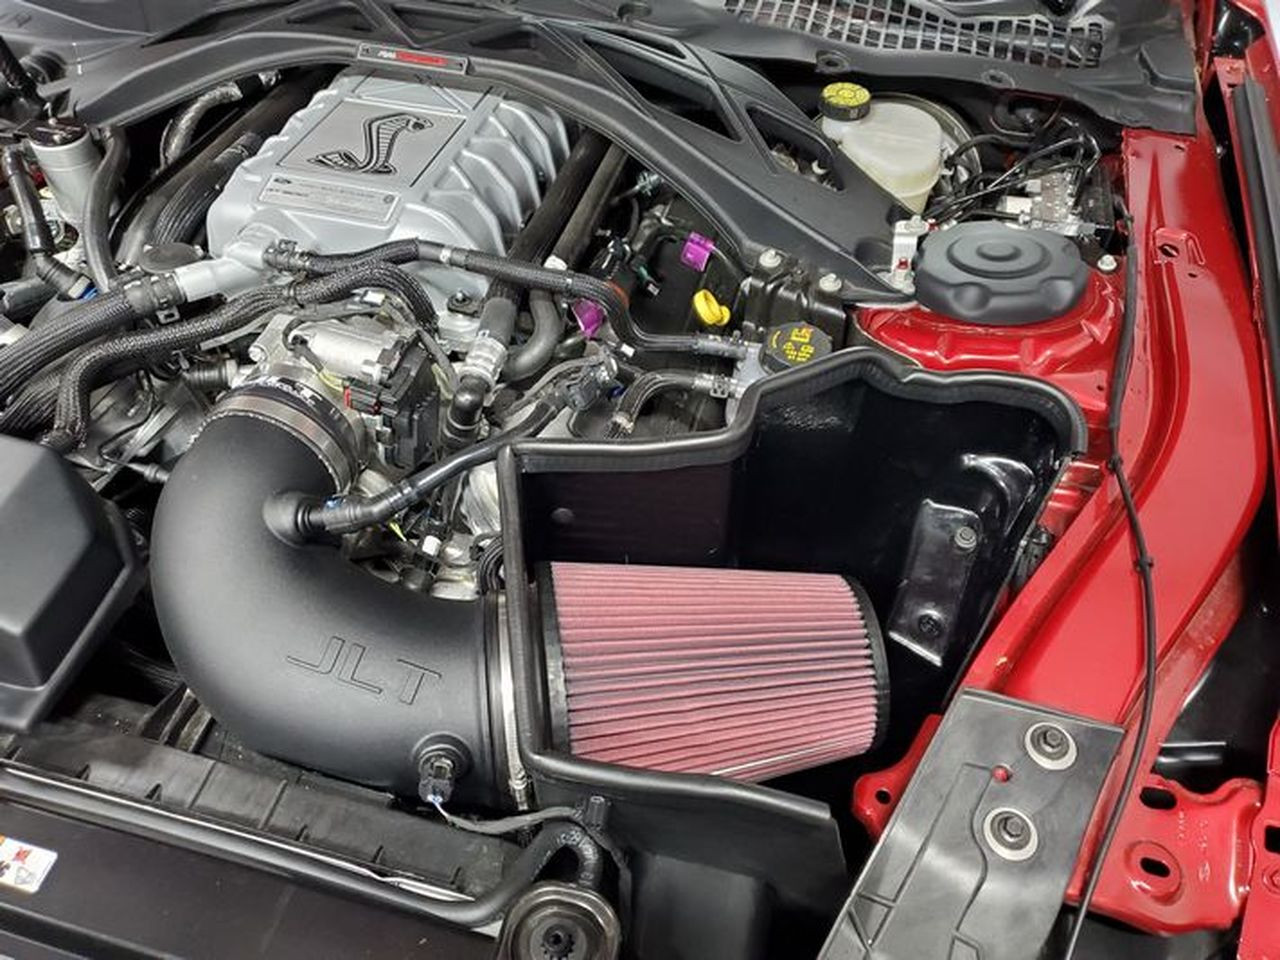 JLT Big Air Intake (2020 GT500)